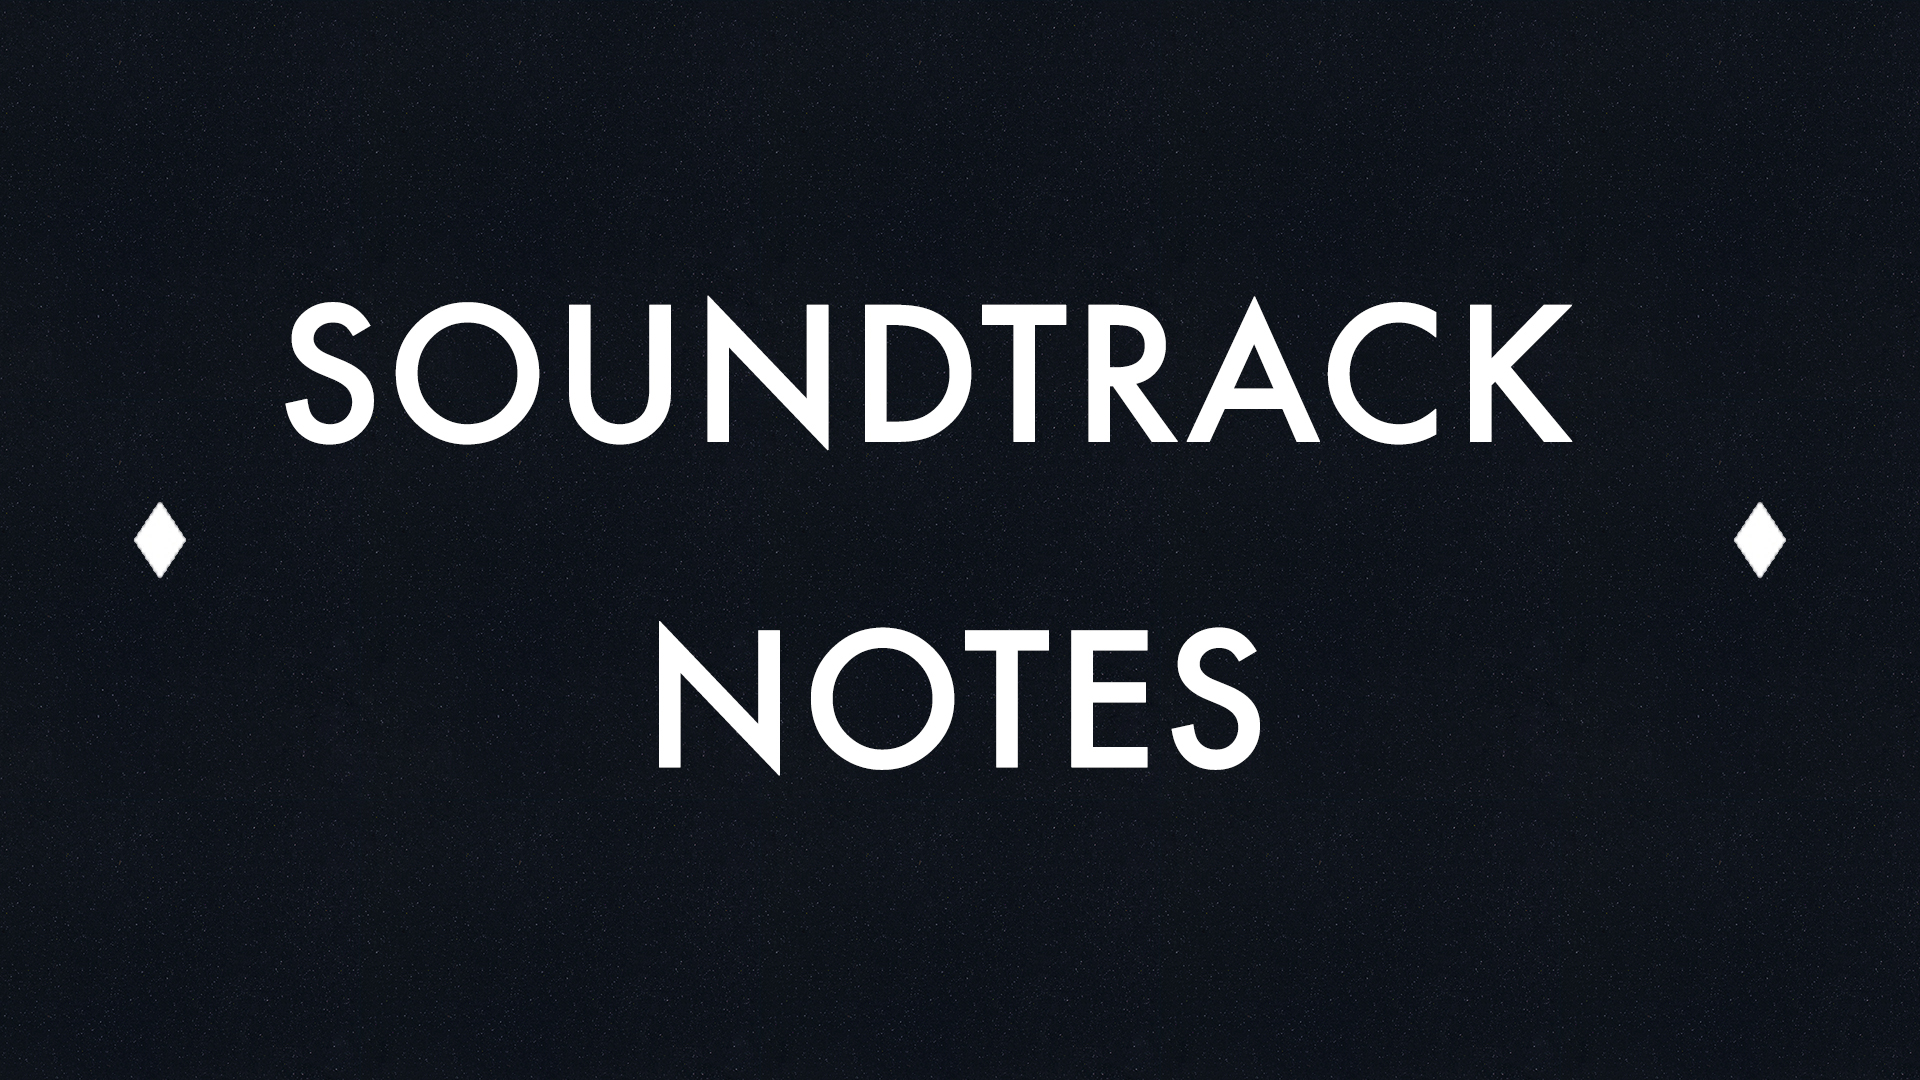 Soundtrack Notes